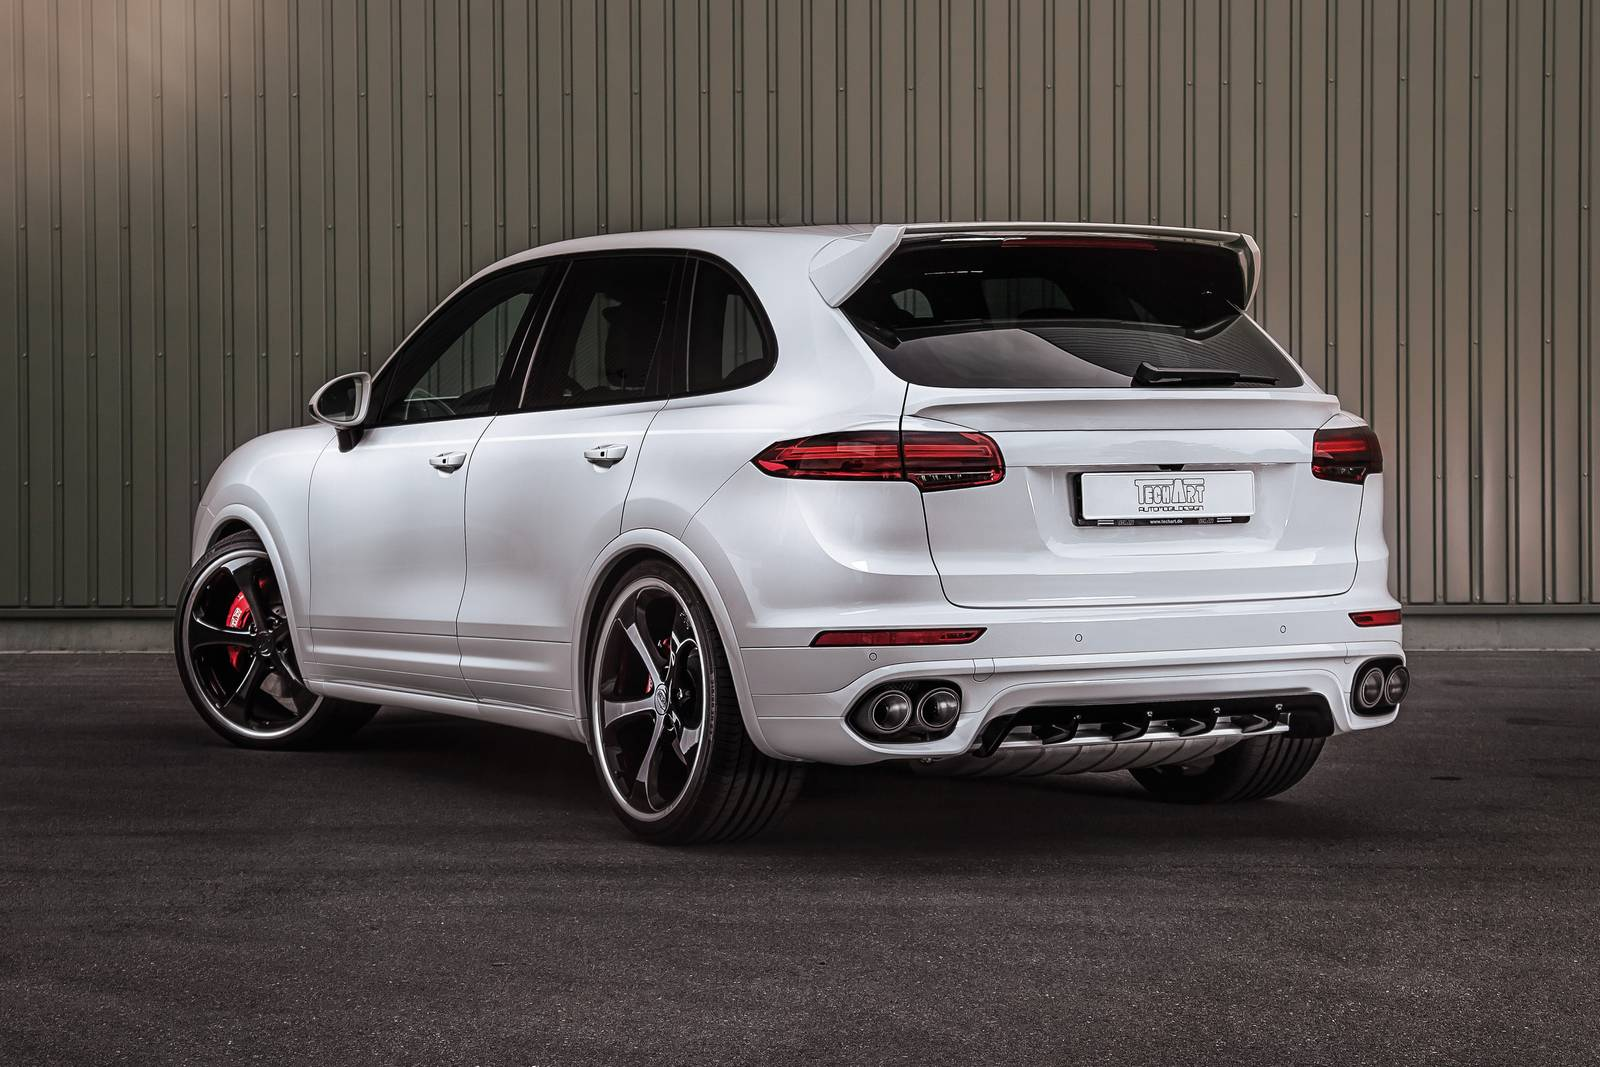 techart upgrades porsche cayenne turbo to 700hp gtspirit. Black Bedroom Furniture Sets. Home Design Ideas